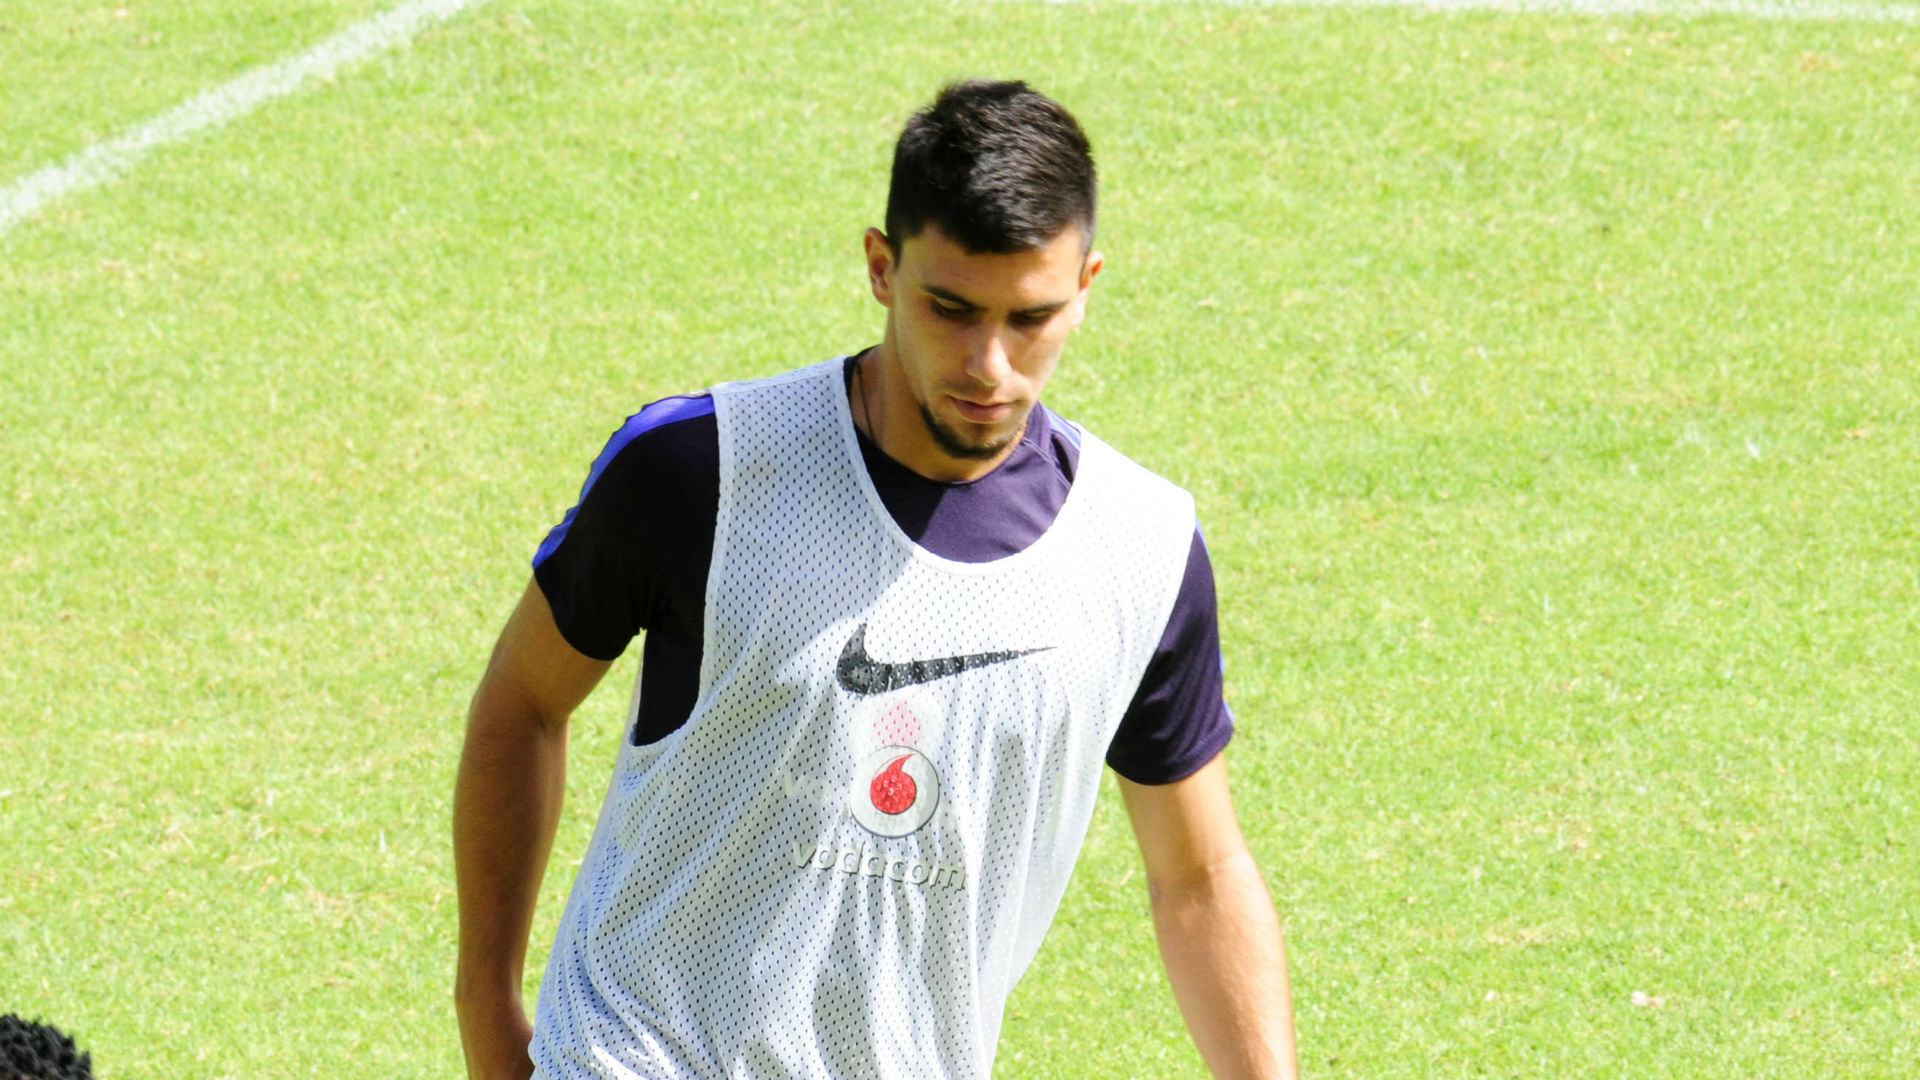 Leaving Kaizer Chiefs for Bidvest Wits was an easy decision - Gordinho